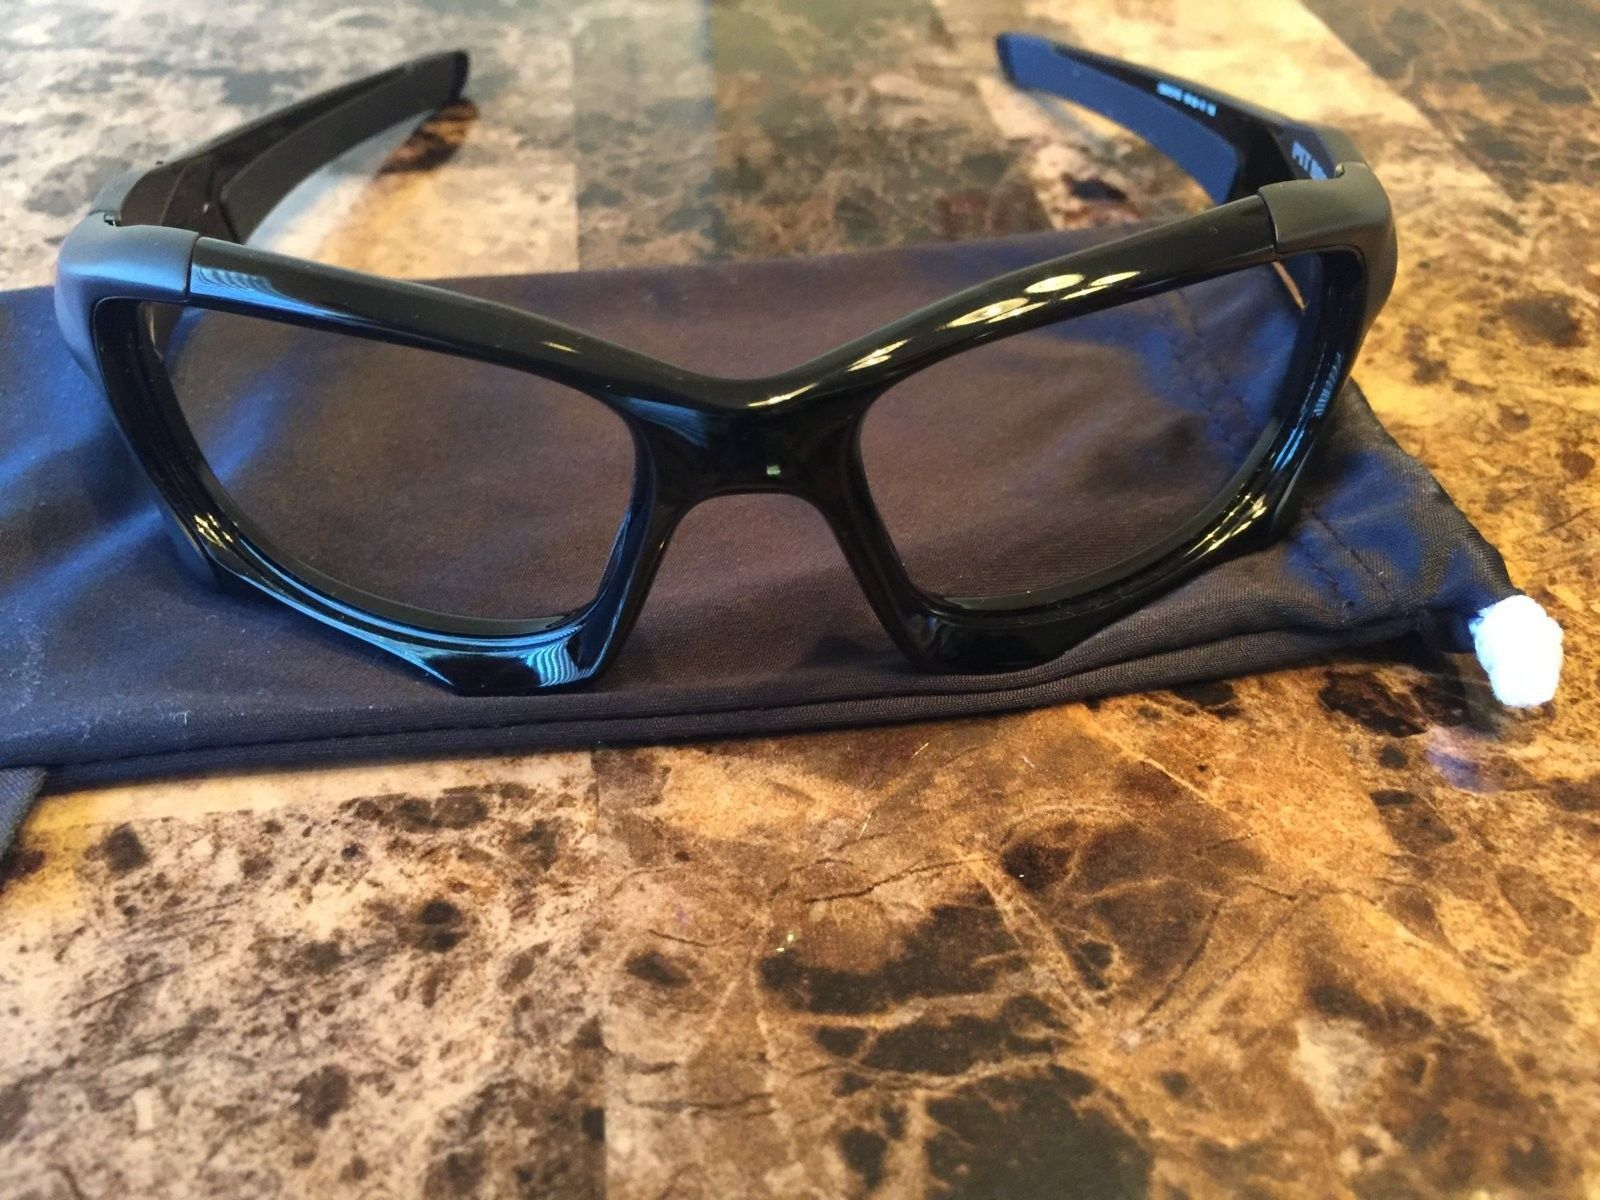 Mint PB2 Polished frame $155 shipped - image.jpeg